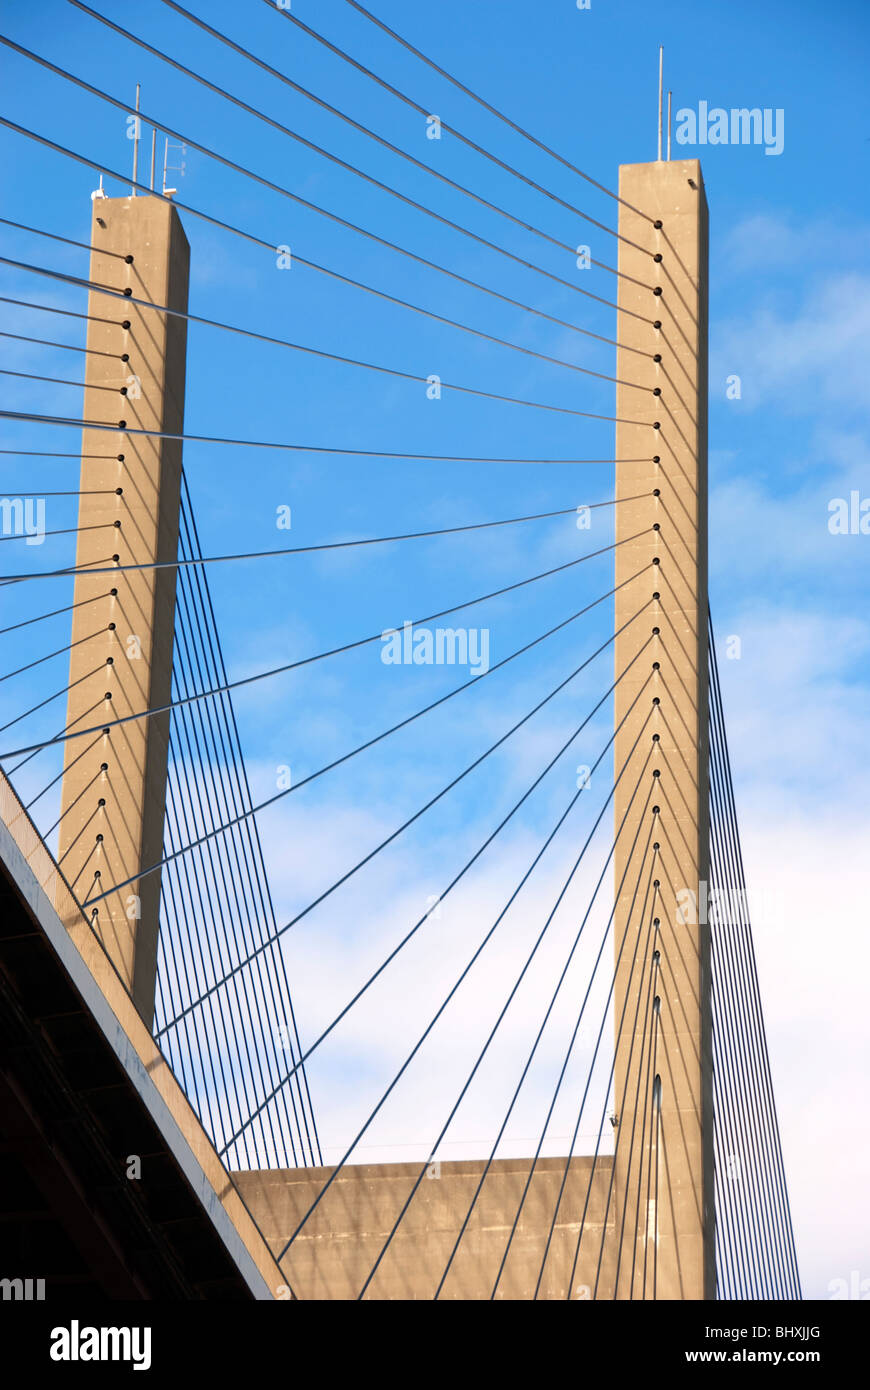 Symmetric patterns and shapes of a suspension bridge. - Stock Image